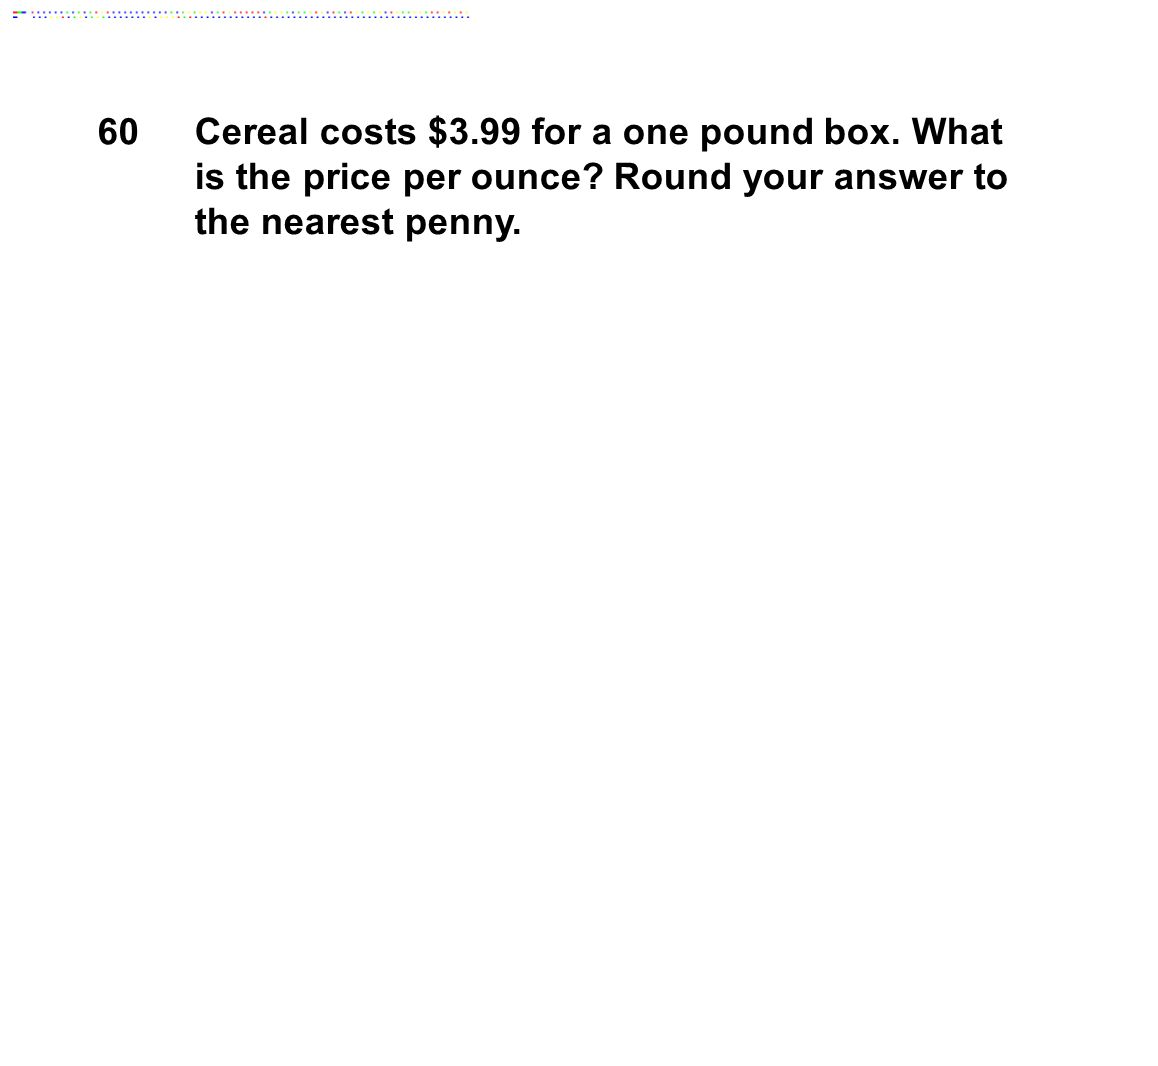 60 Cereal costs $3.99 for a one pound box. What is the price per ounce Round your answer to the nearest penny.